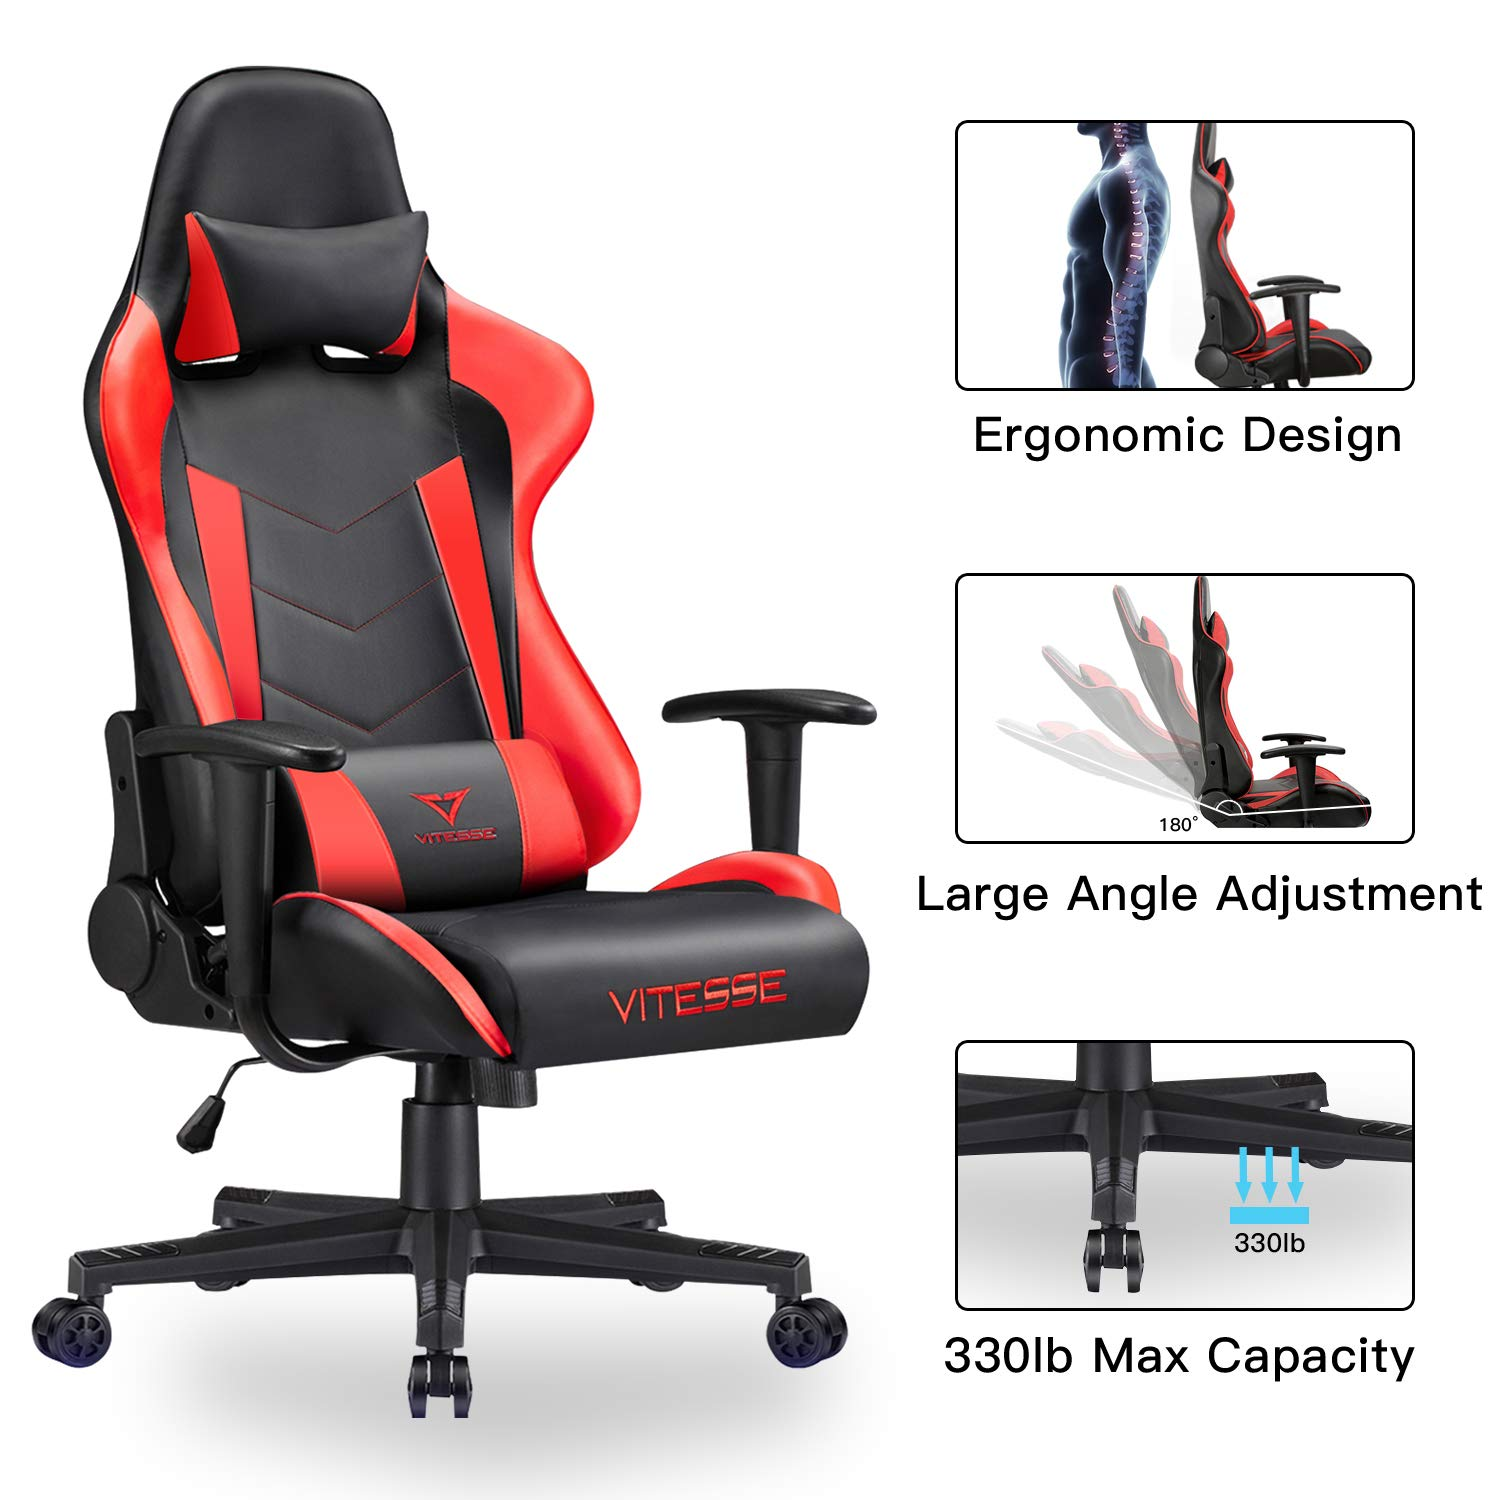 Vitesse Gaming Chair Racing Style High-Back PC Chair Ergonomic Office Desk Chair Swivel E-Sports Leather Computer Chair with Lumbar Support and Headrest (Red) by Vitesse